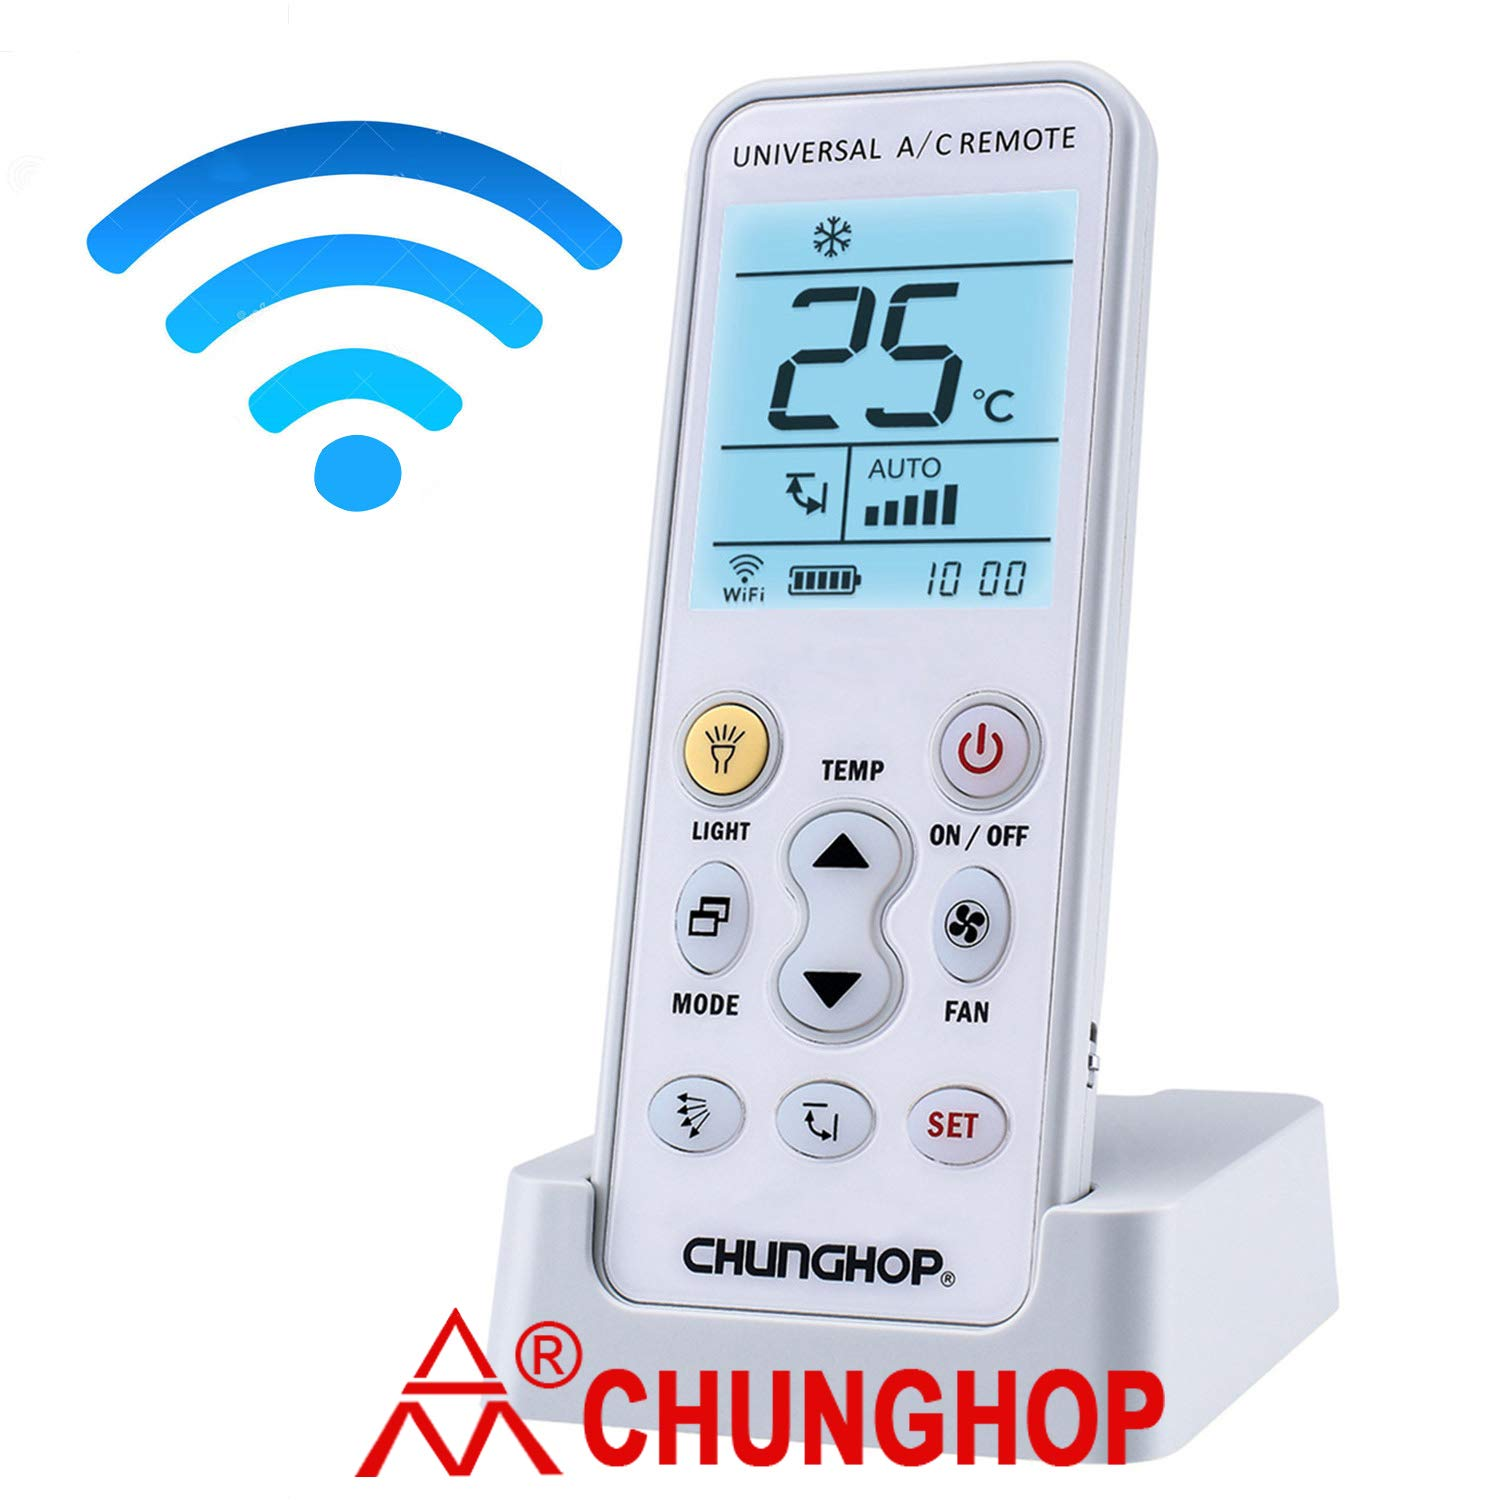 CHUNGHOP Air Conditioner Remote K-390EW APP Phone WiFi Universal A/C Controller Air Conditioning Control for LG TCL Toshiba Panasonic York Fujitsu Chigo Gree Carrier and Other Brands NO Window A/C